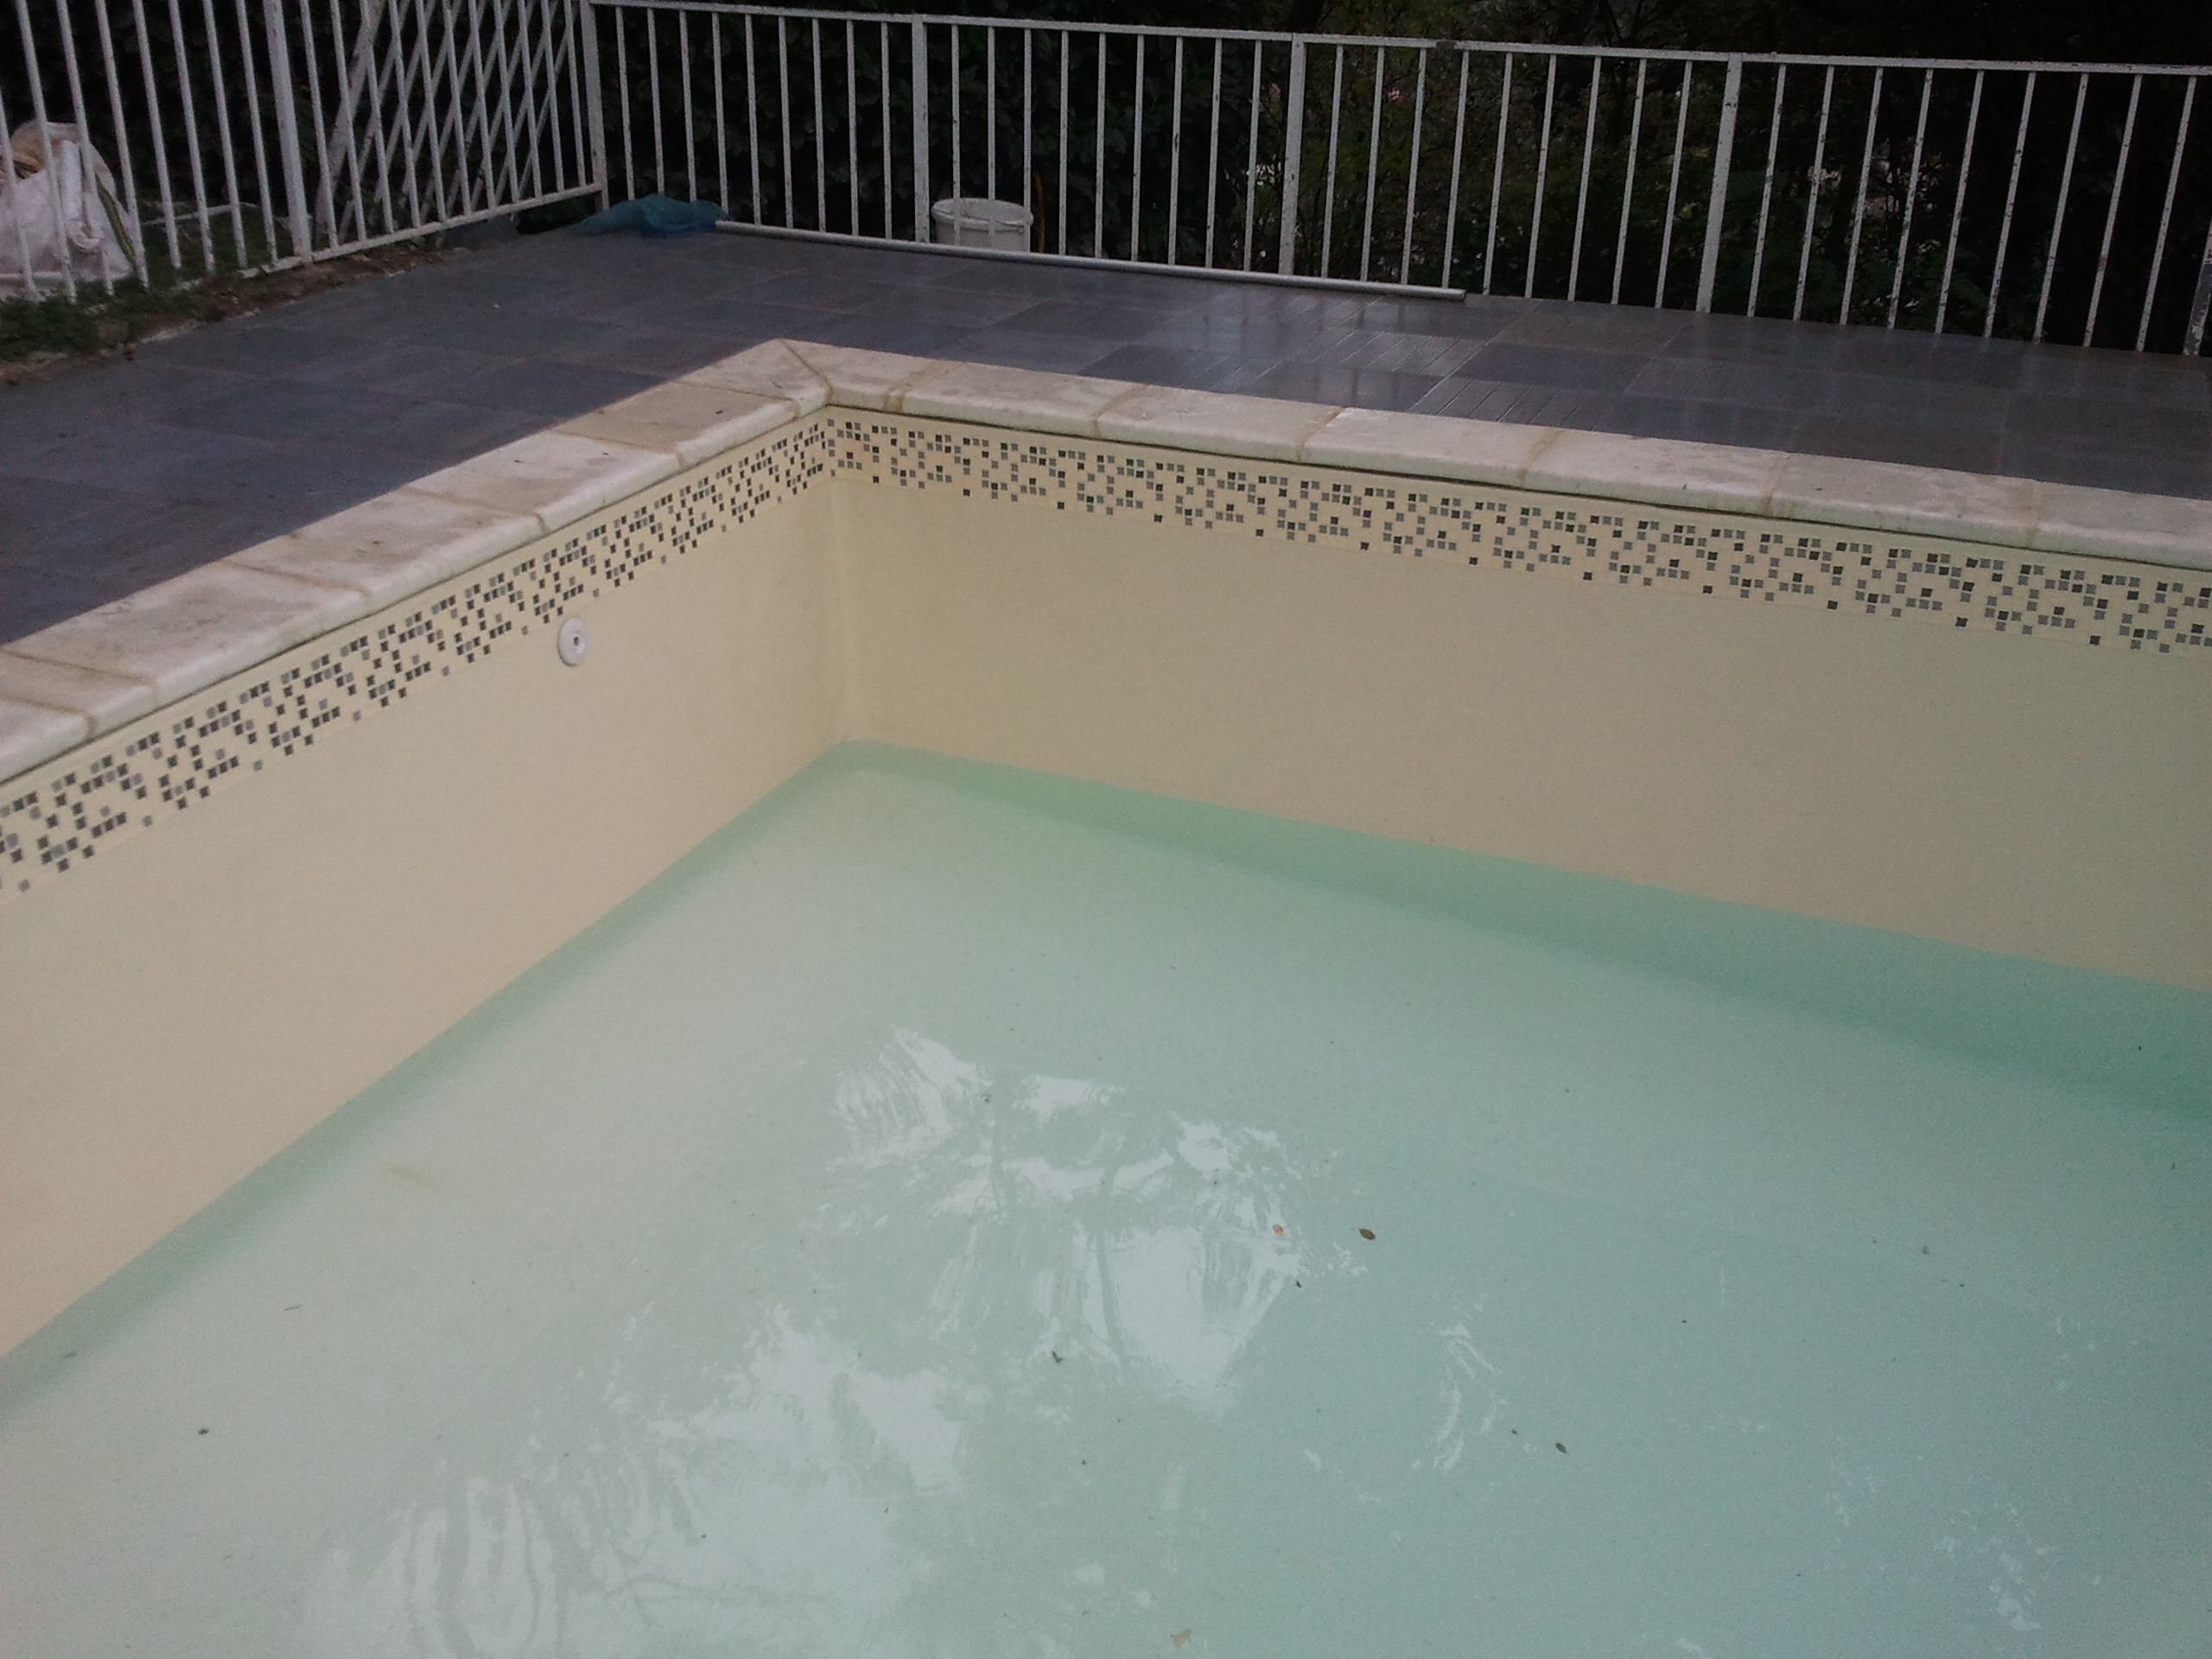 Motif et frise mosa ne r novation piscine rh nes alpes for Acheter un liner de piscine